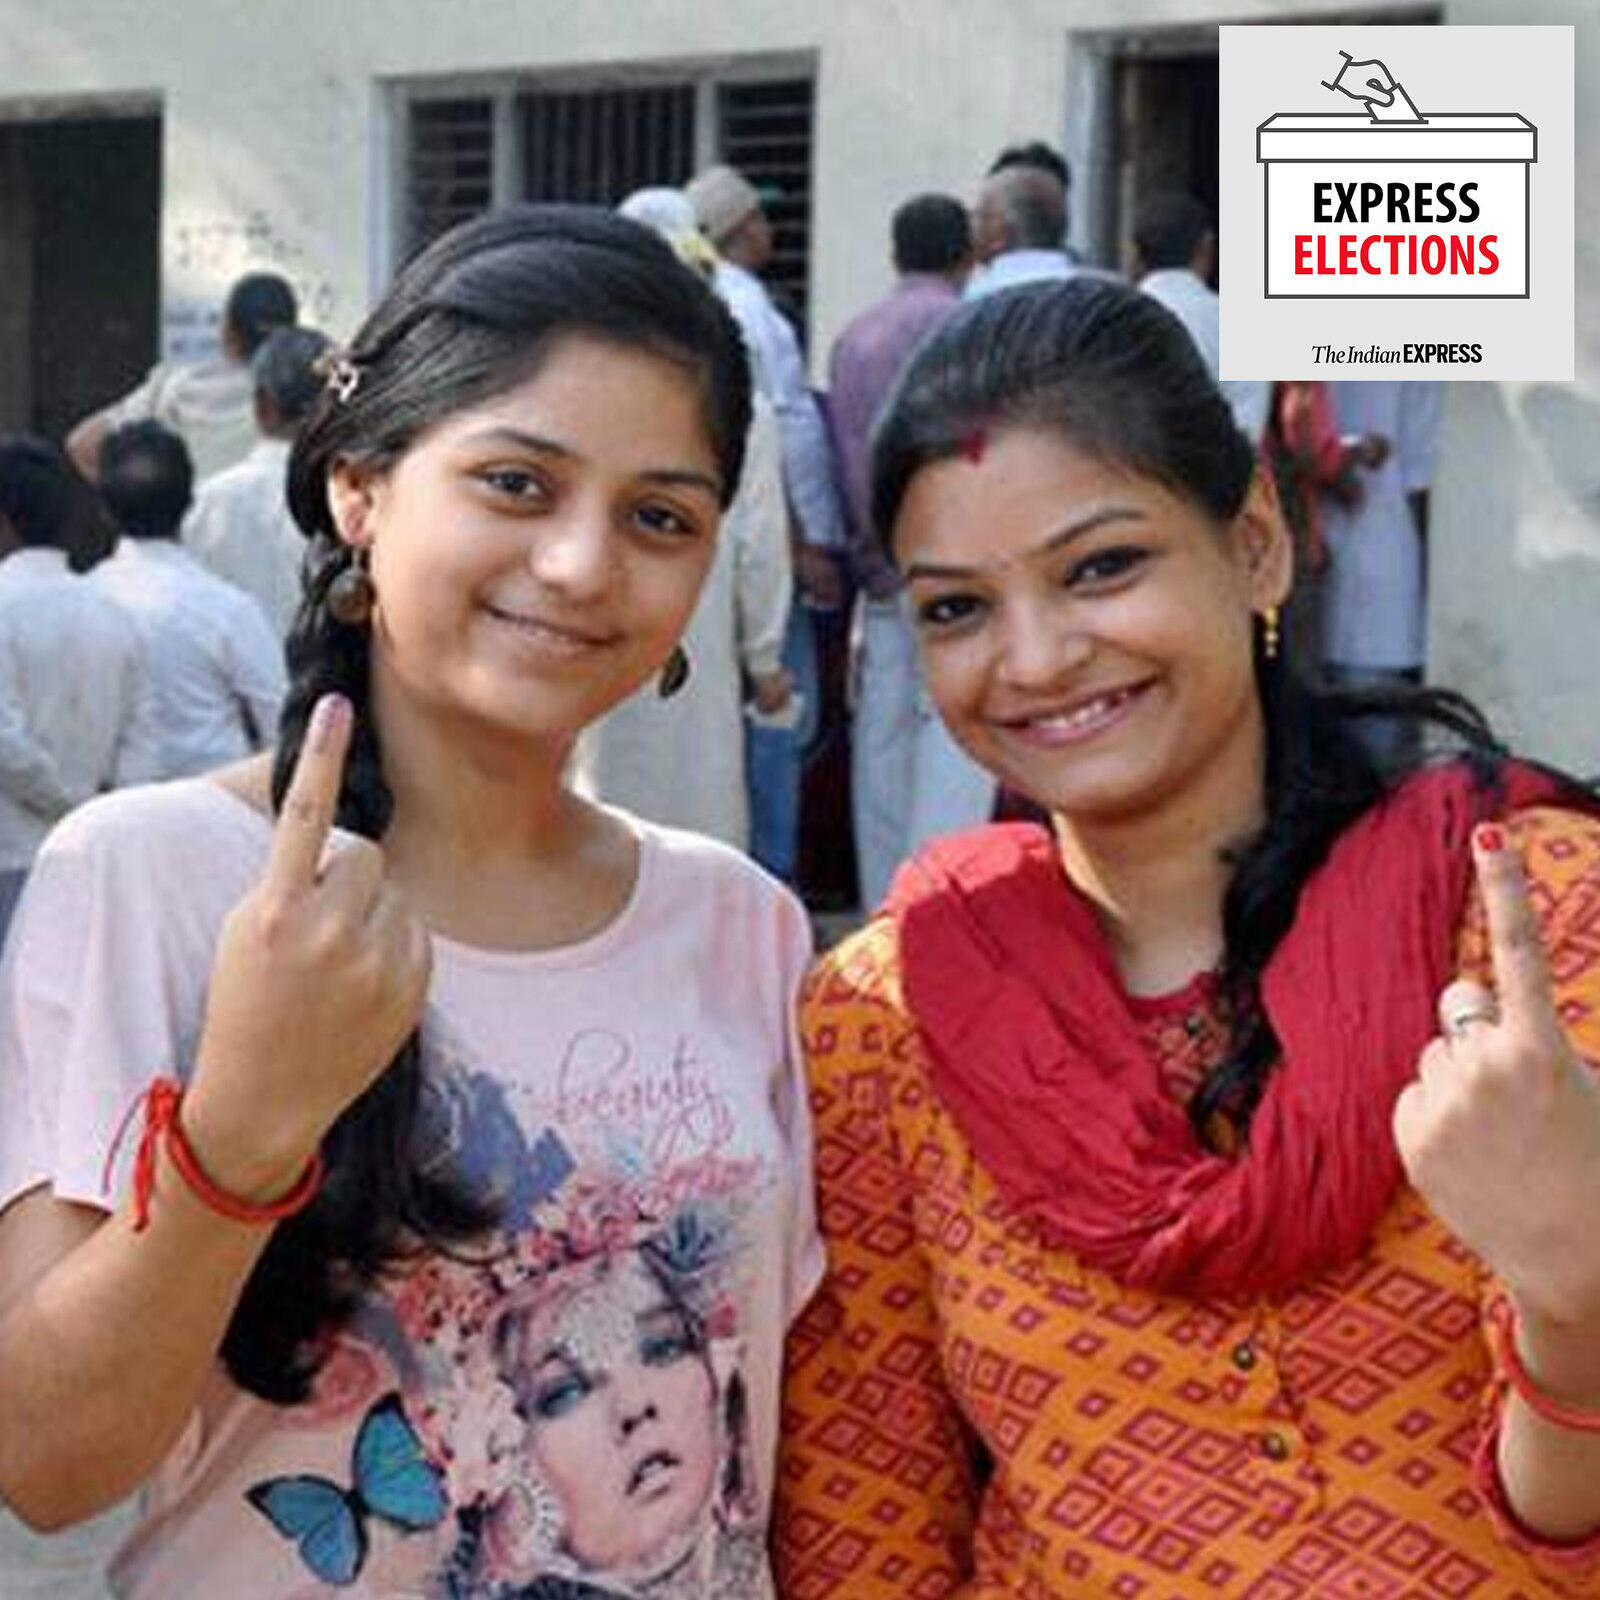 17: The Youth Vote: What election issues will influence it?